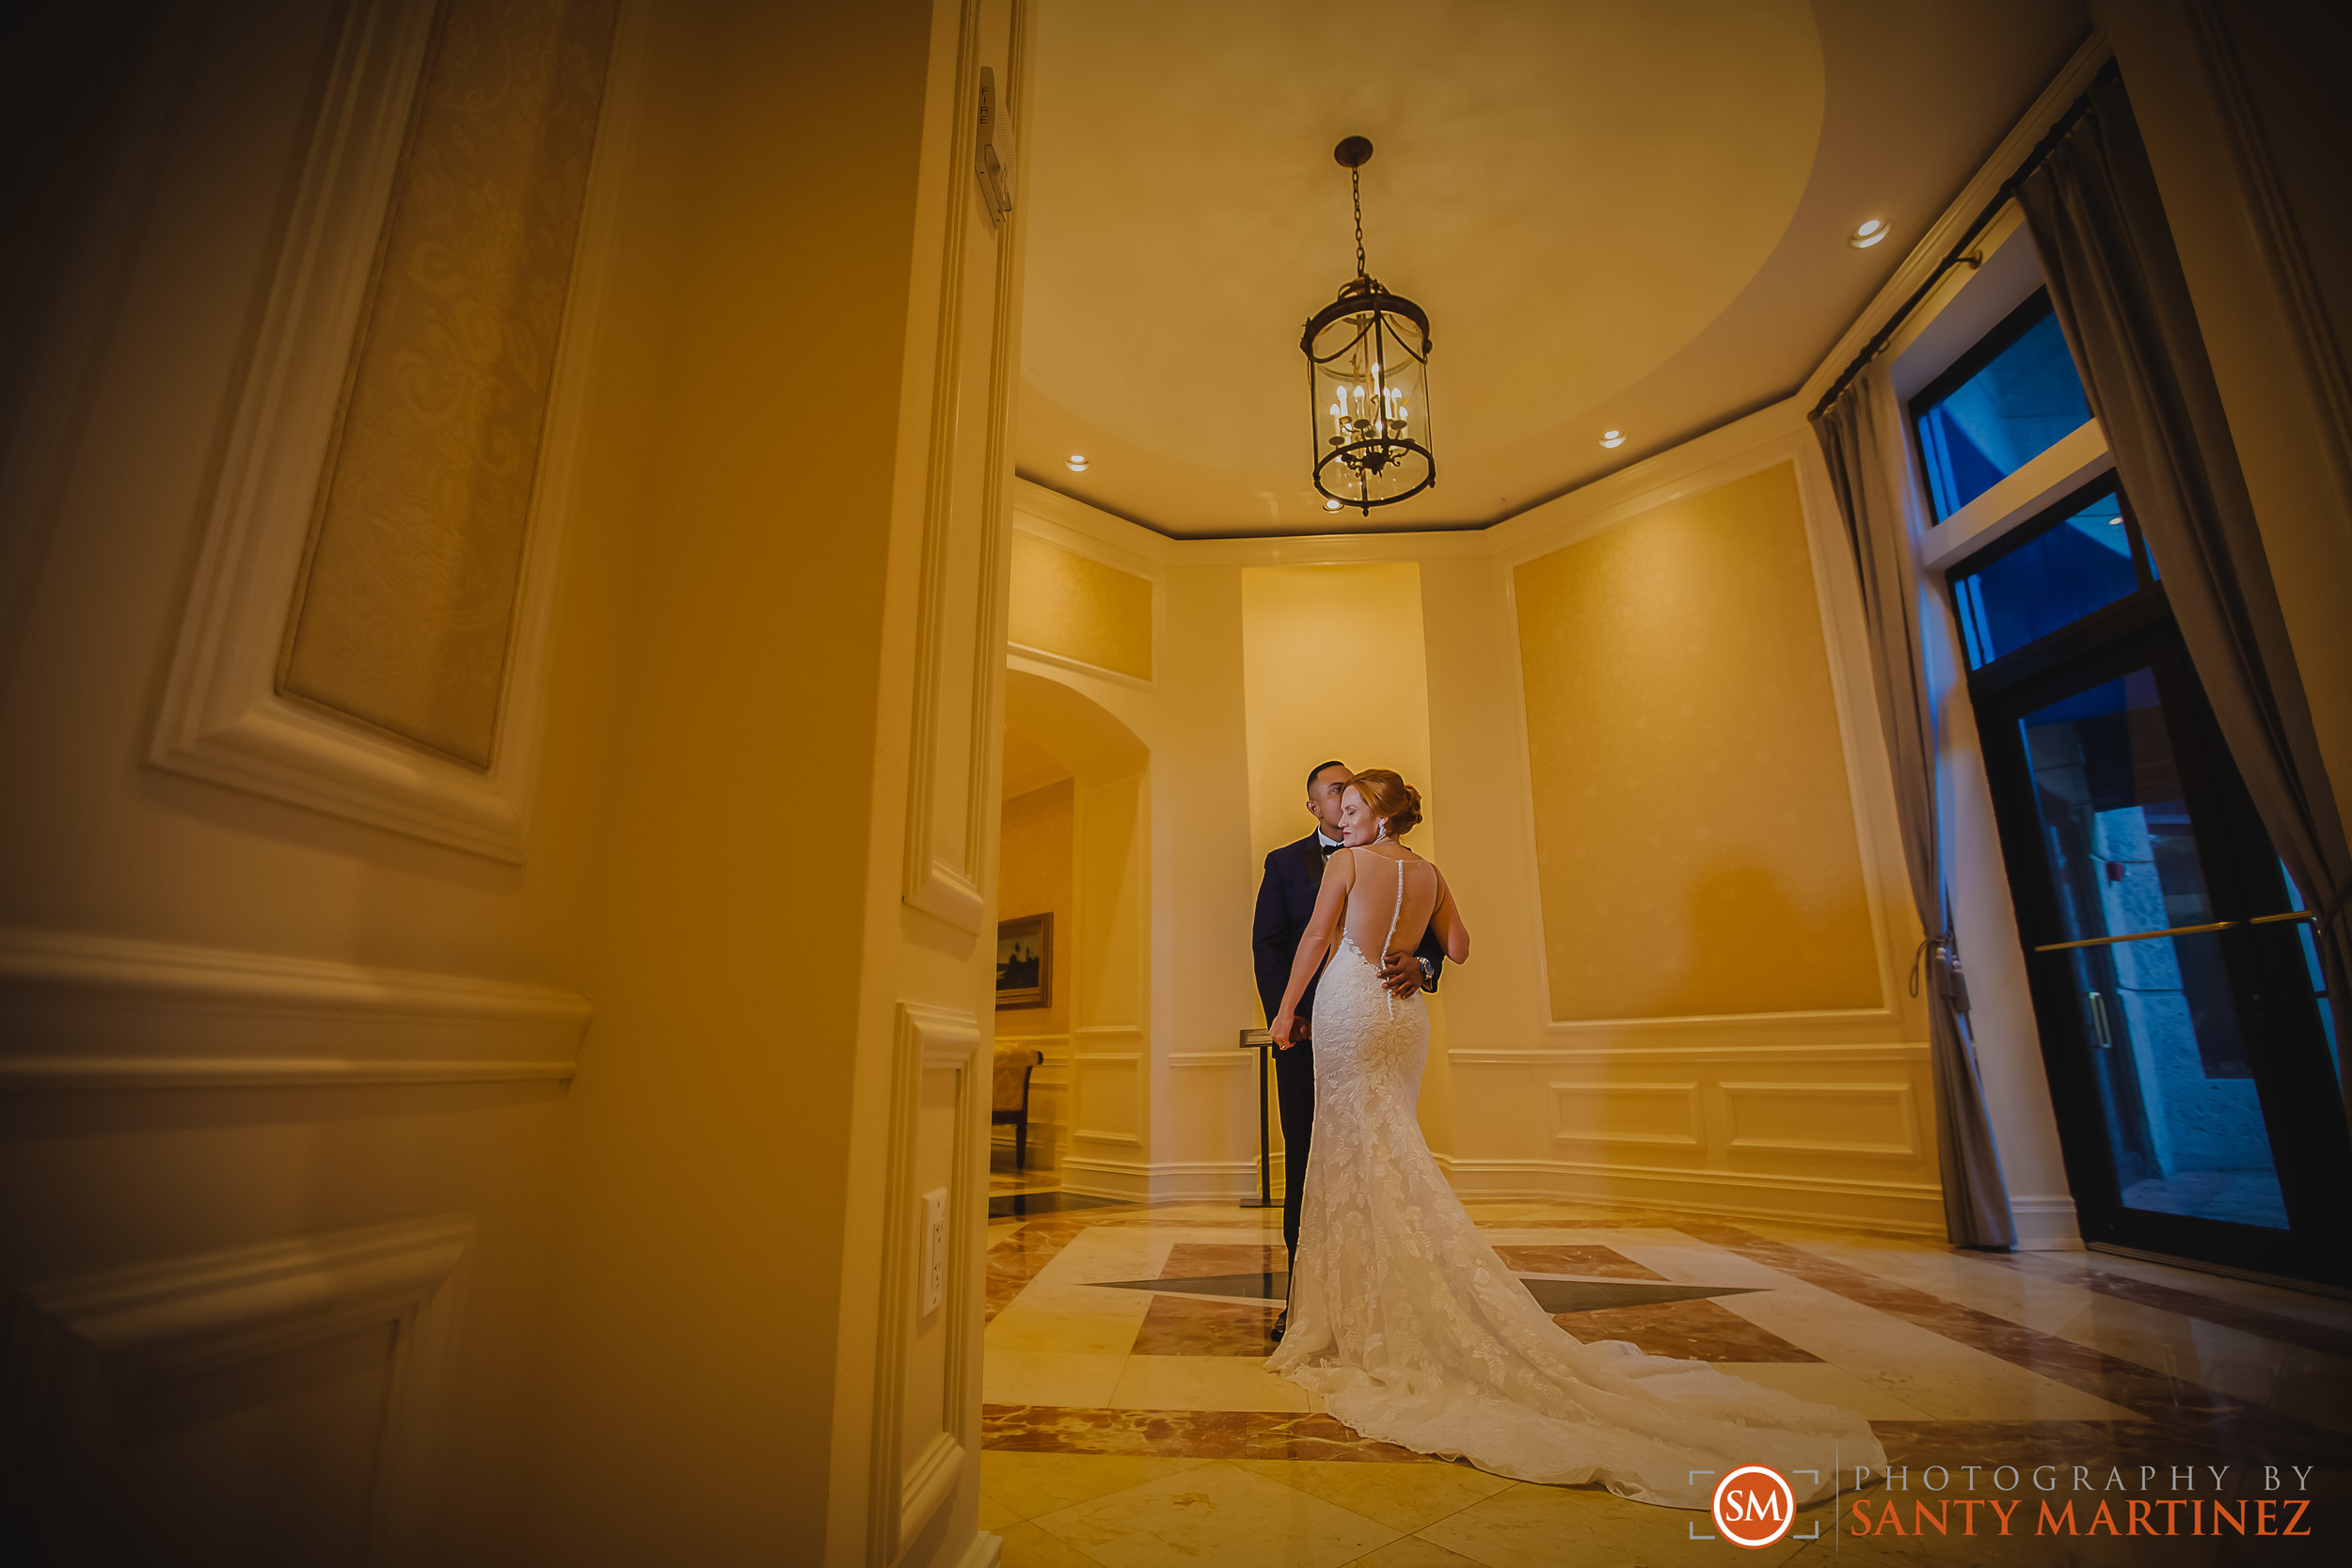 Wedding Ritz Carlton Coconut Grove - Santy Martinez-15.jpg